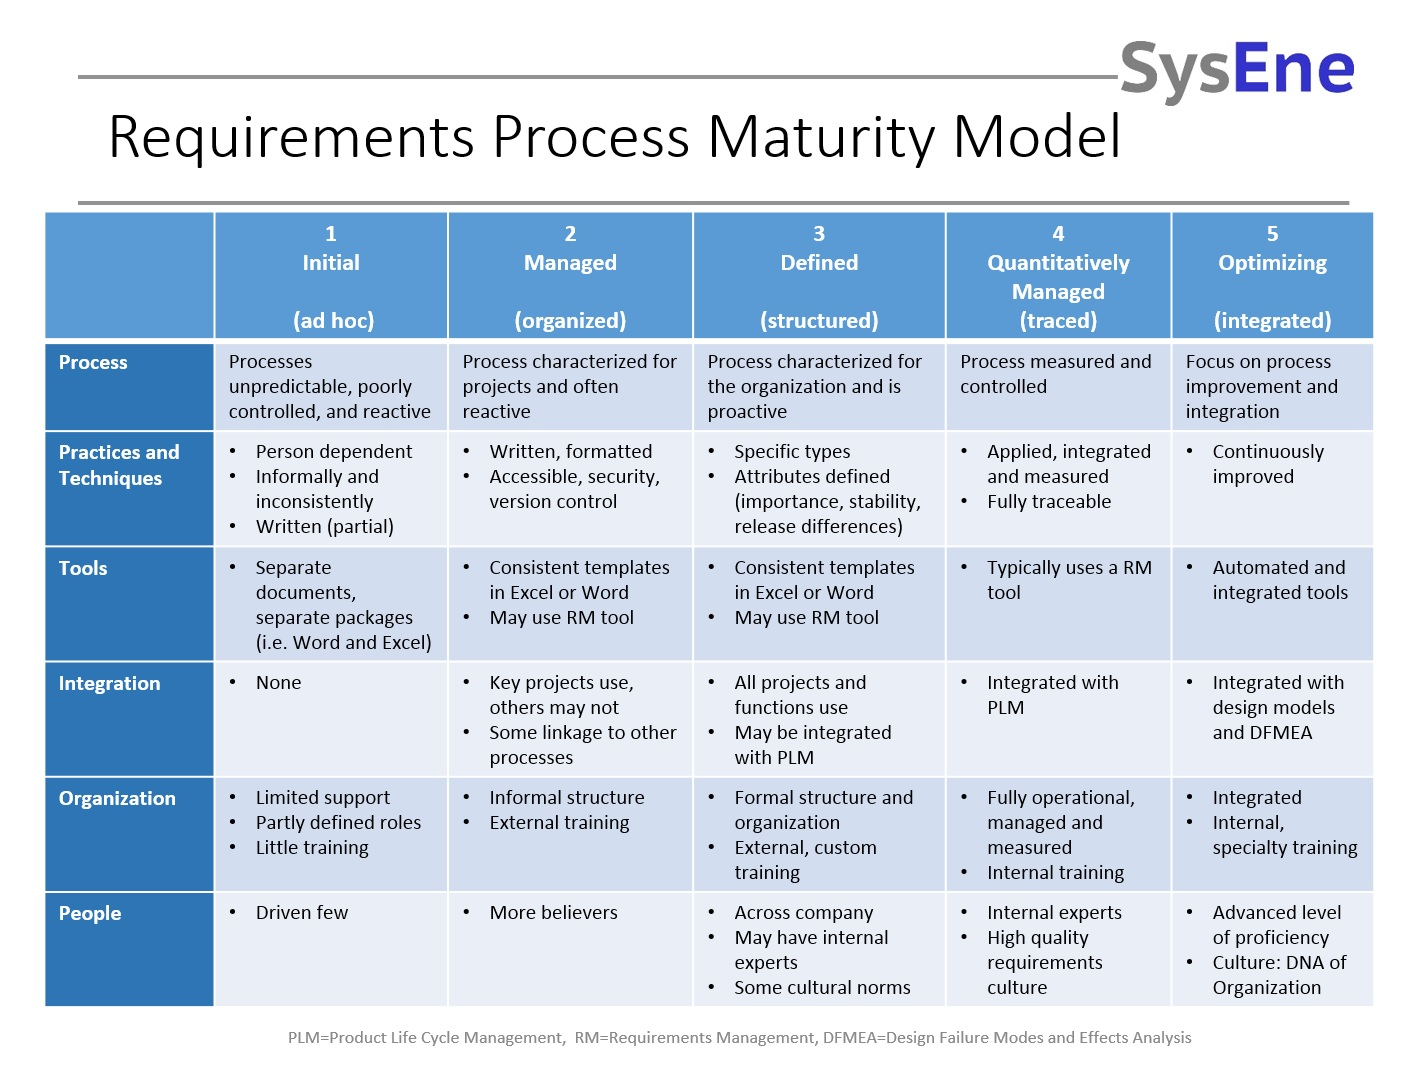 Requirements Process Maturity Model